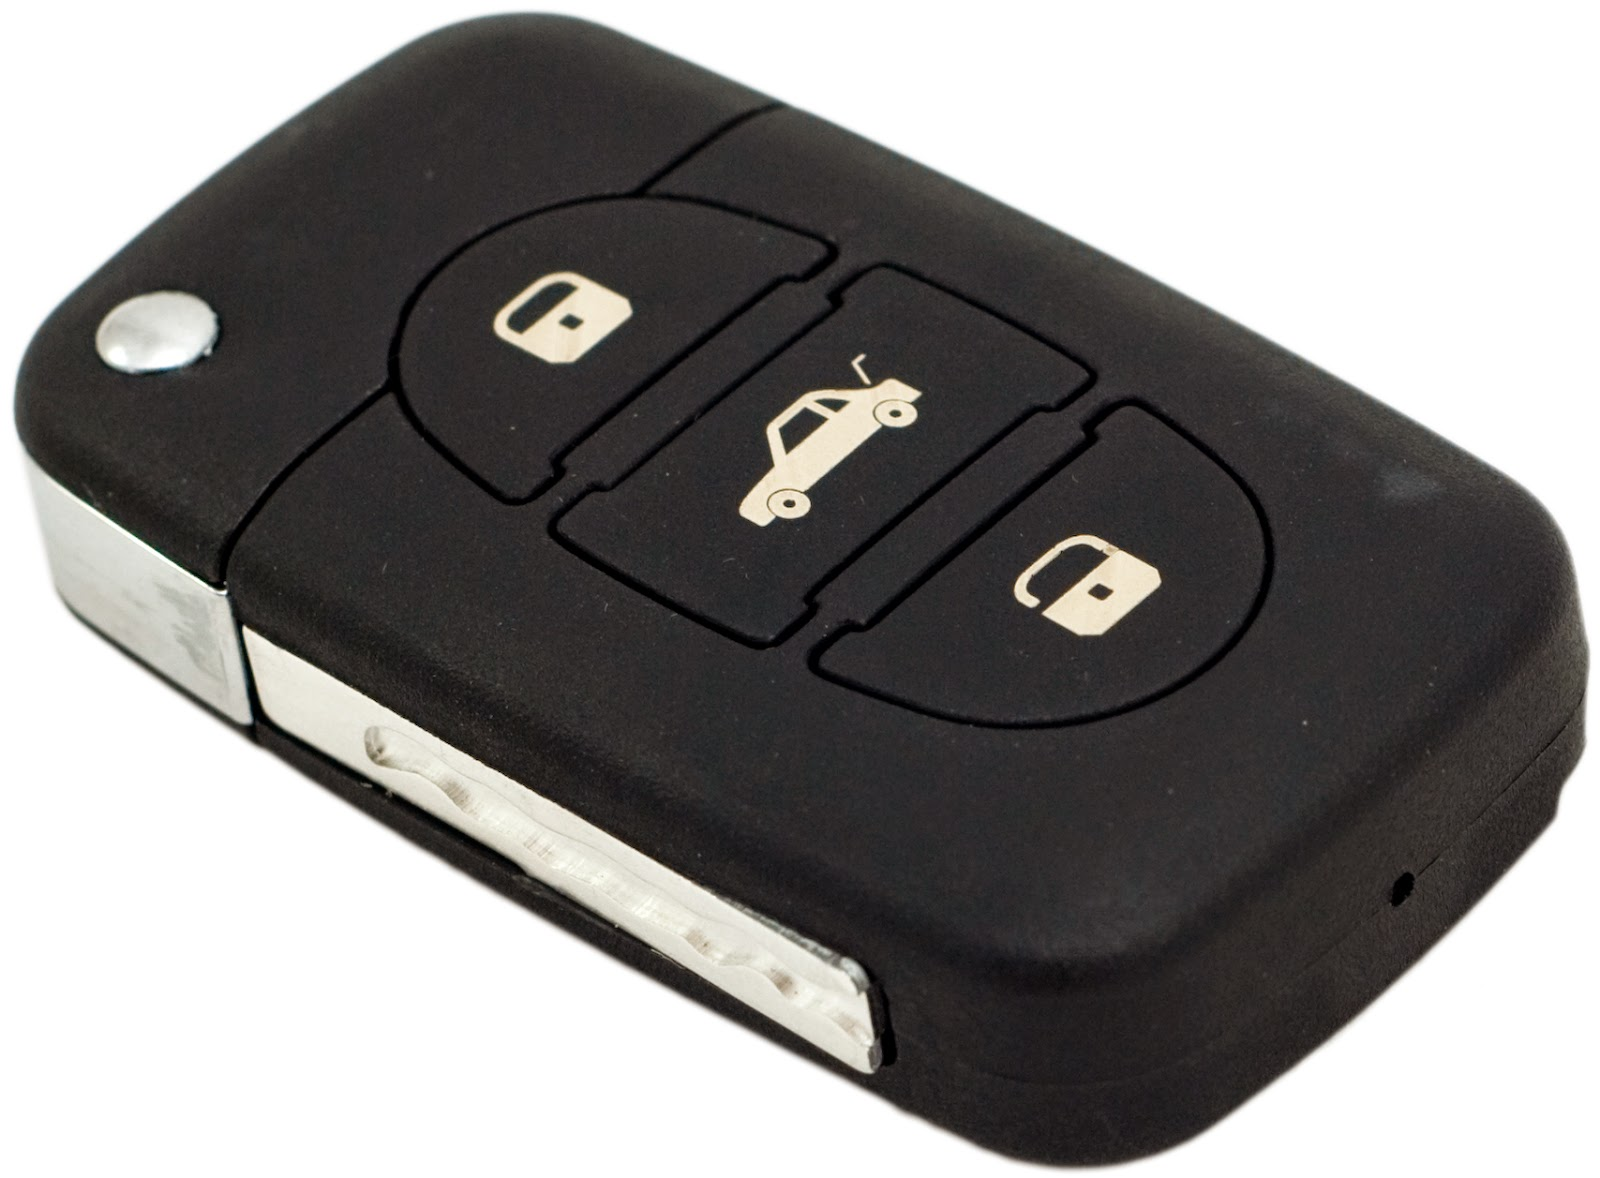 Get Car Keys Made Online